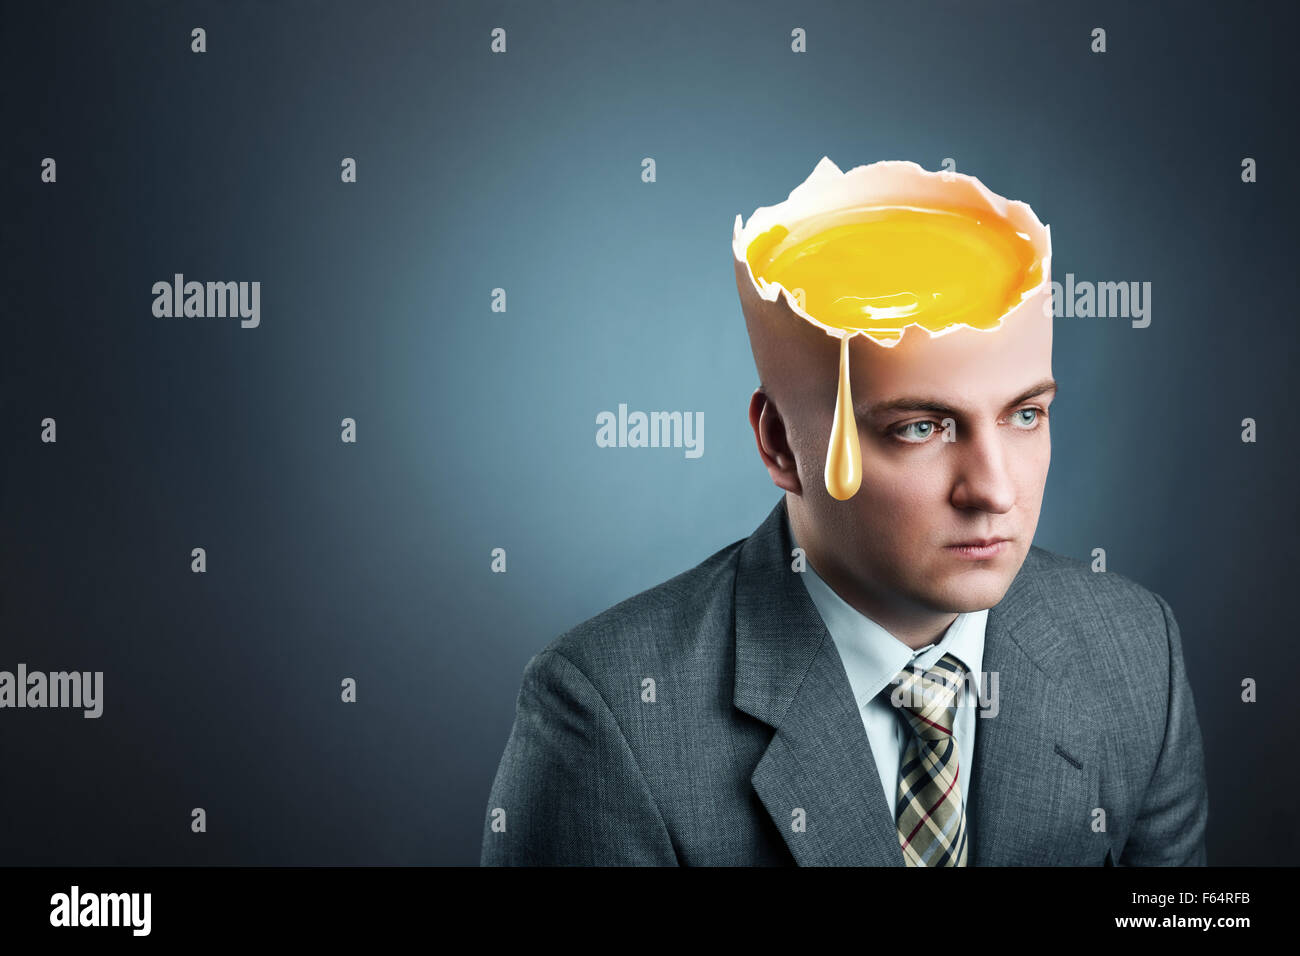 Sad businessman with egg head isolated on gray - Stock Image